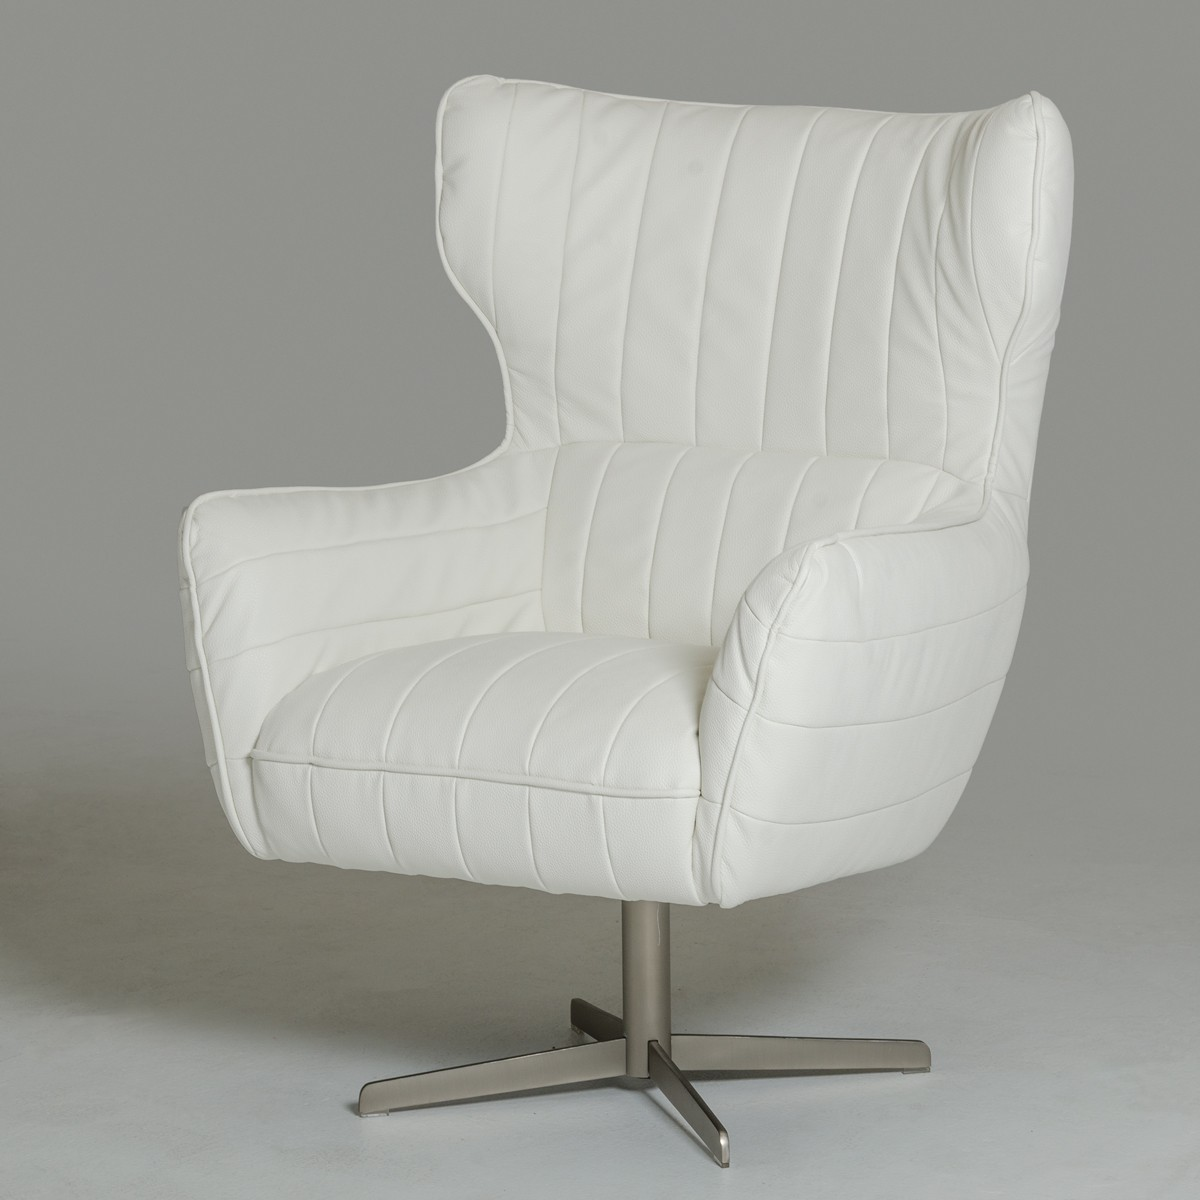 white leather swivel armchair white leather swivel accent chair charlotte north carolina 22013 | white ecoleather swivel chair v casakylie